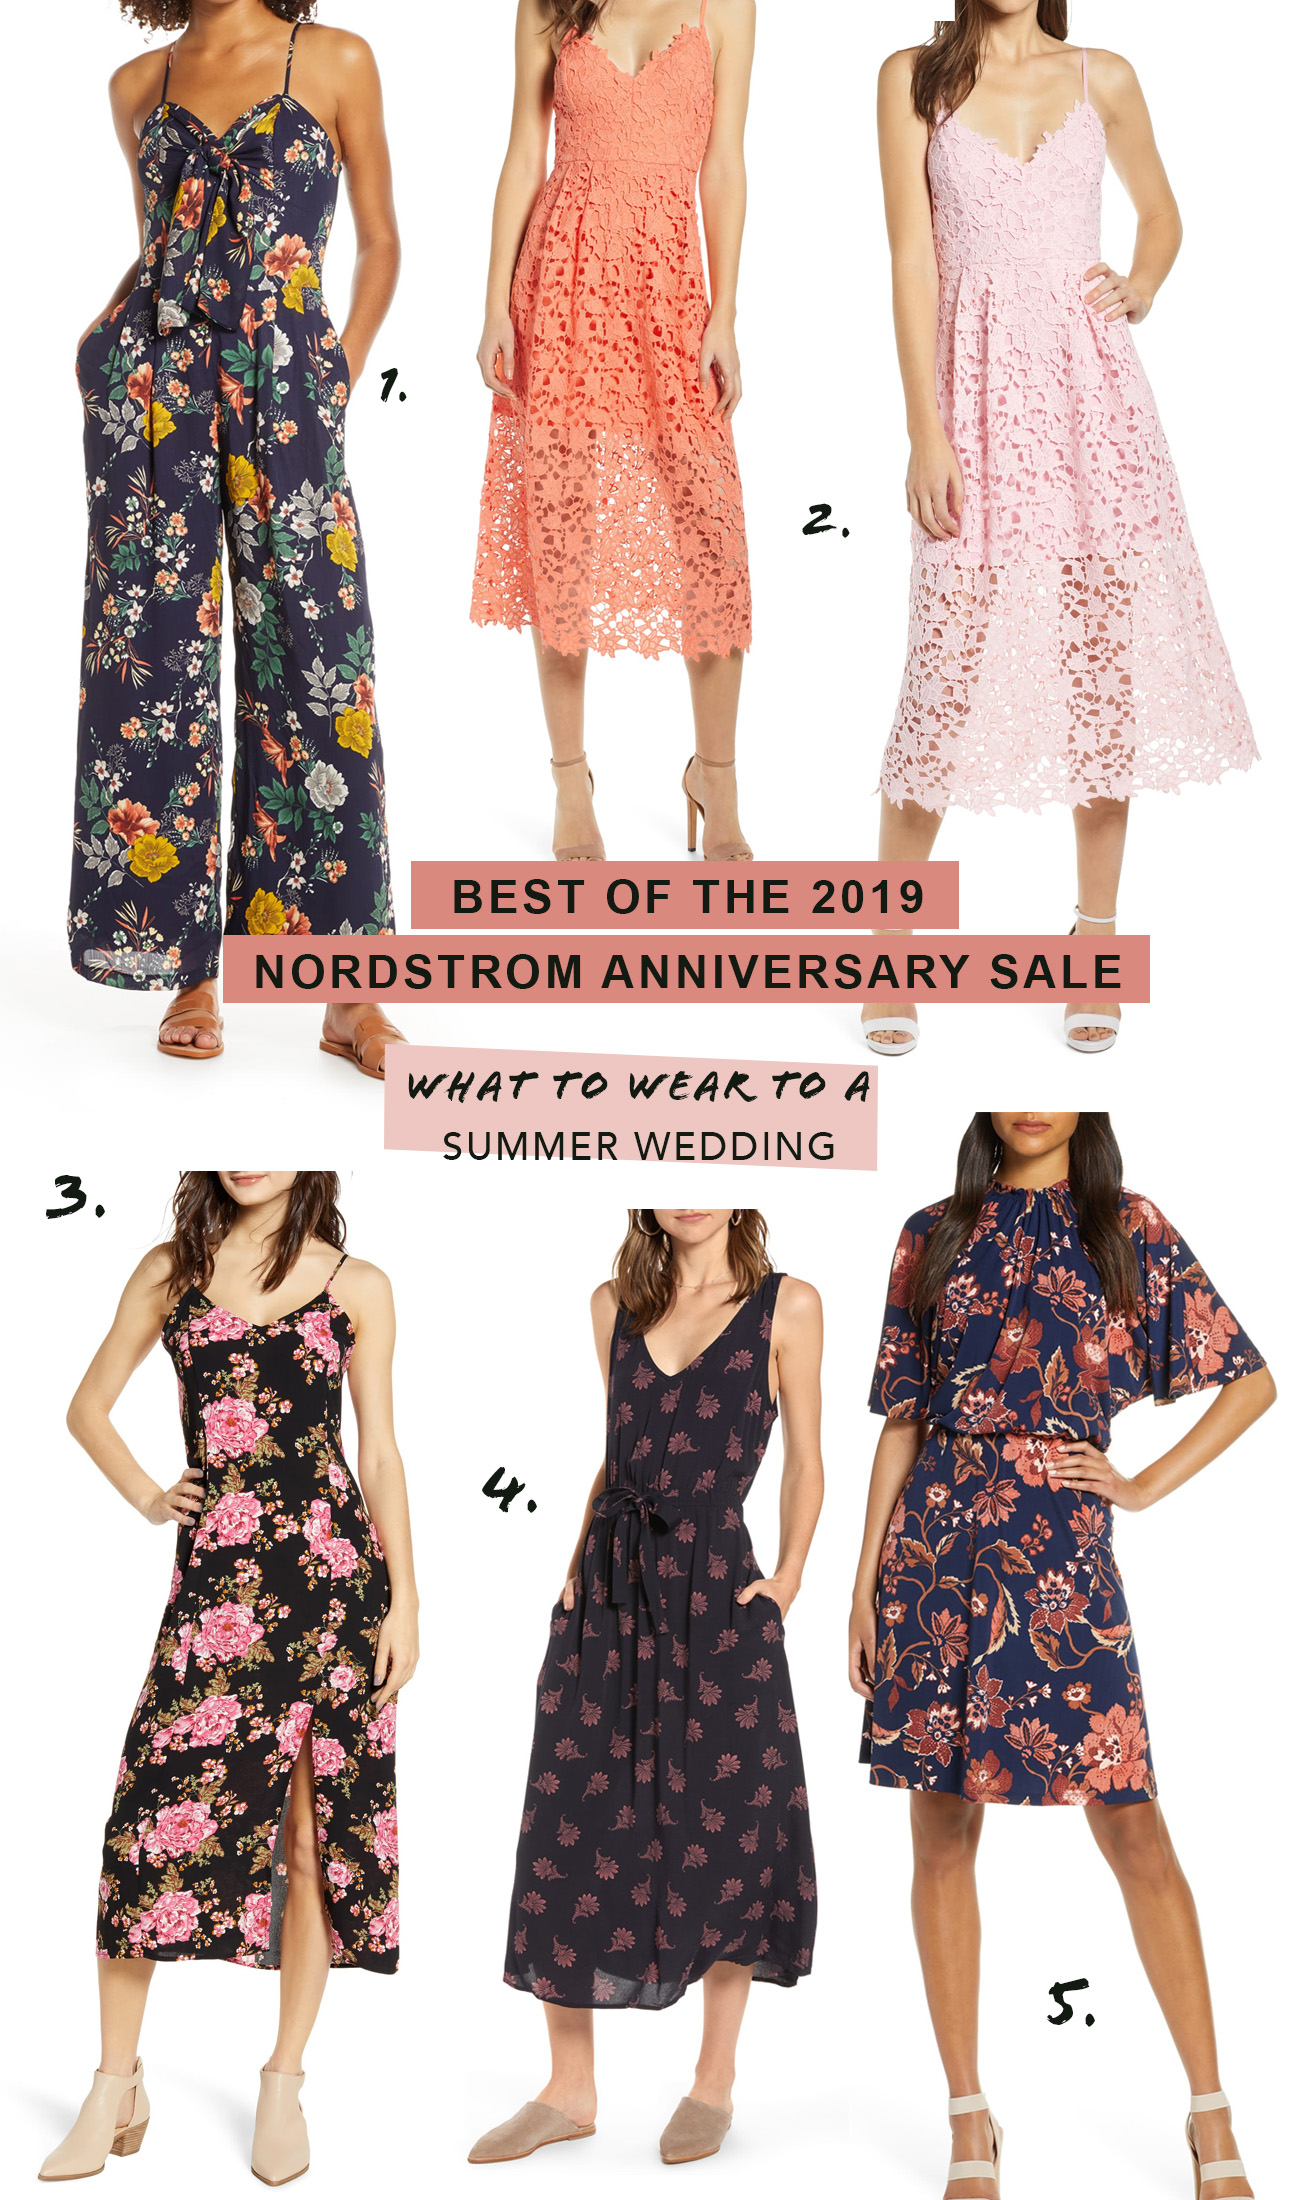 Nordstrom Anniversary Sale - Favorite Dresses to wear to a Summer Wedding